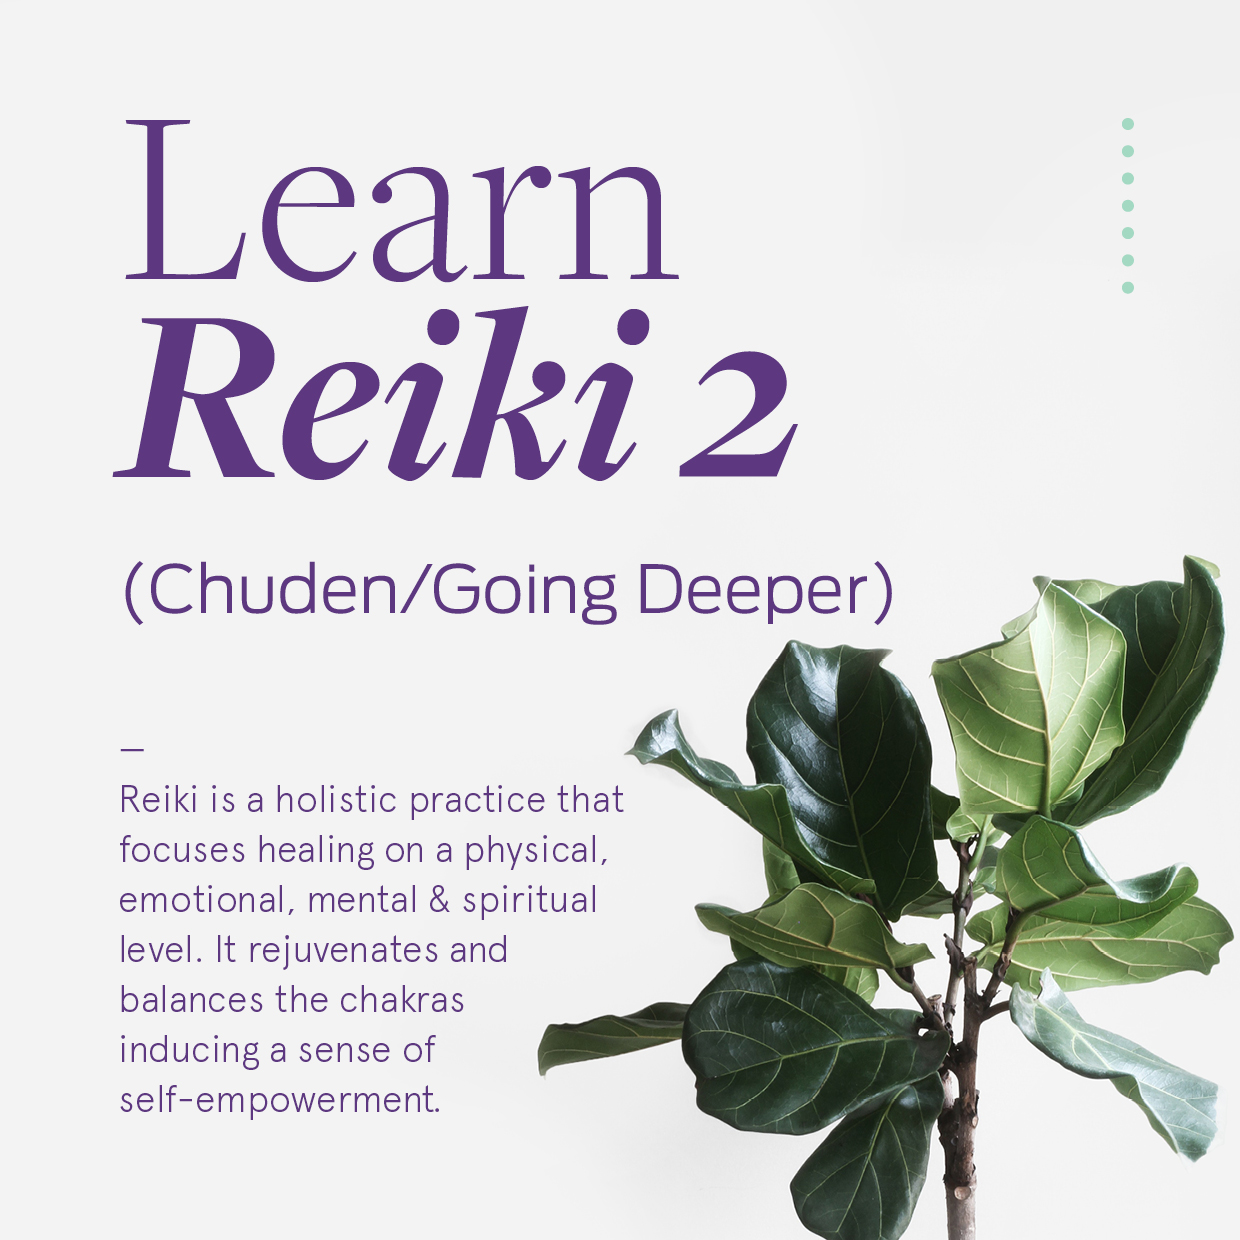 Learn Reiki 2 - What you will receive:A Reiki 2 manual and certificateMorning and afternoon teaWhat we cover:About the Reiki Process – from level one to masters.The science behind ReikiRevisit the 5 principles of Reiki.Reiki SymbolsAbsent/Distant HealingTreatment processIntuitionYour Lineage